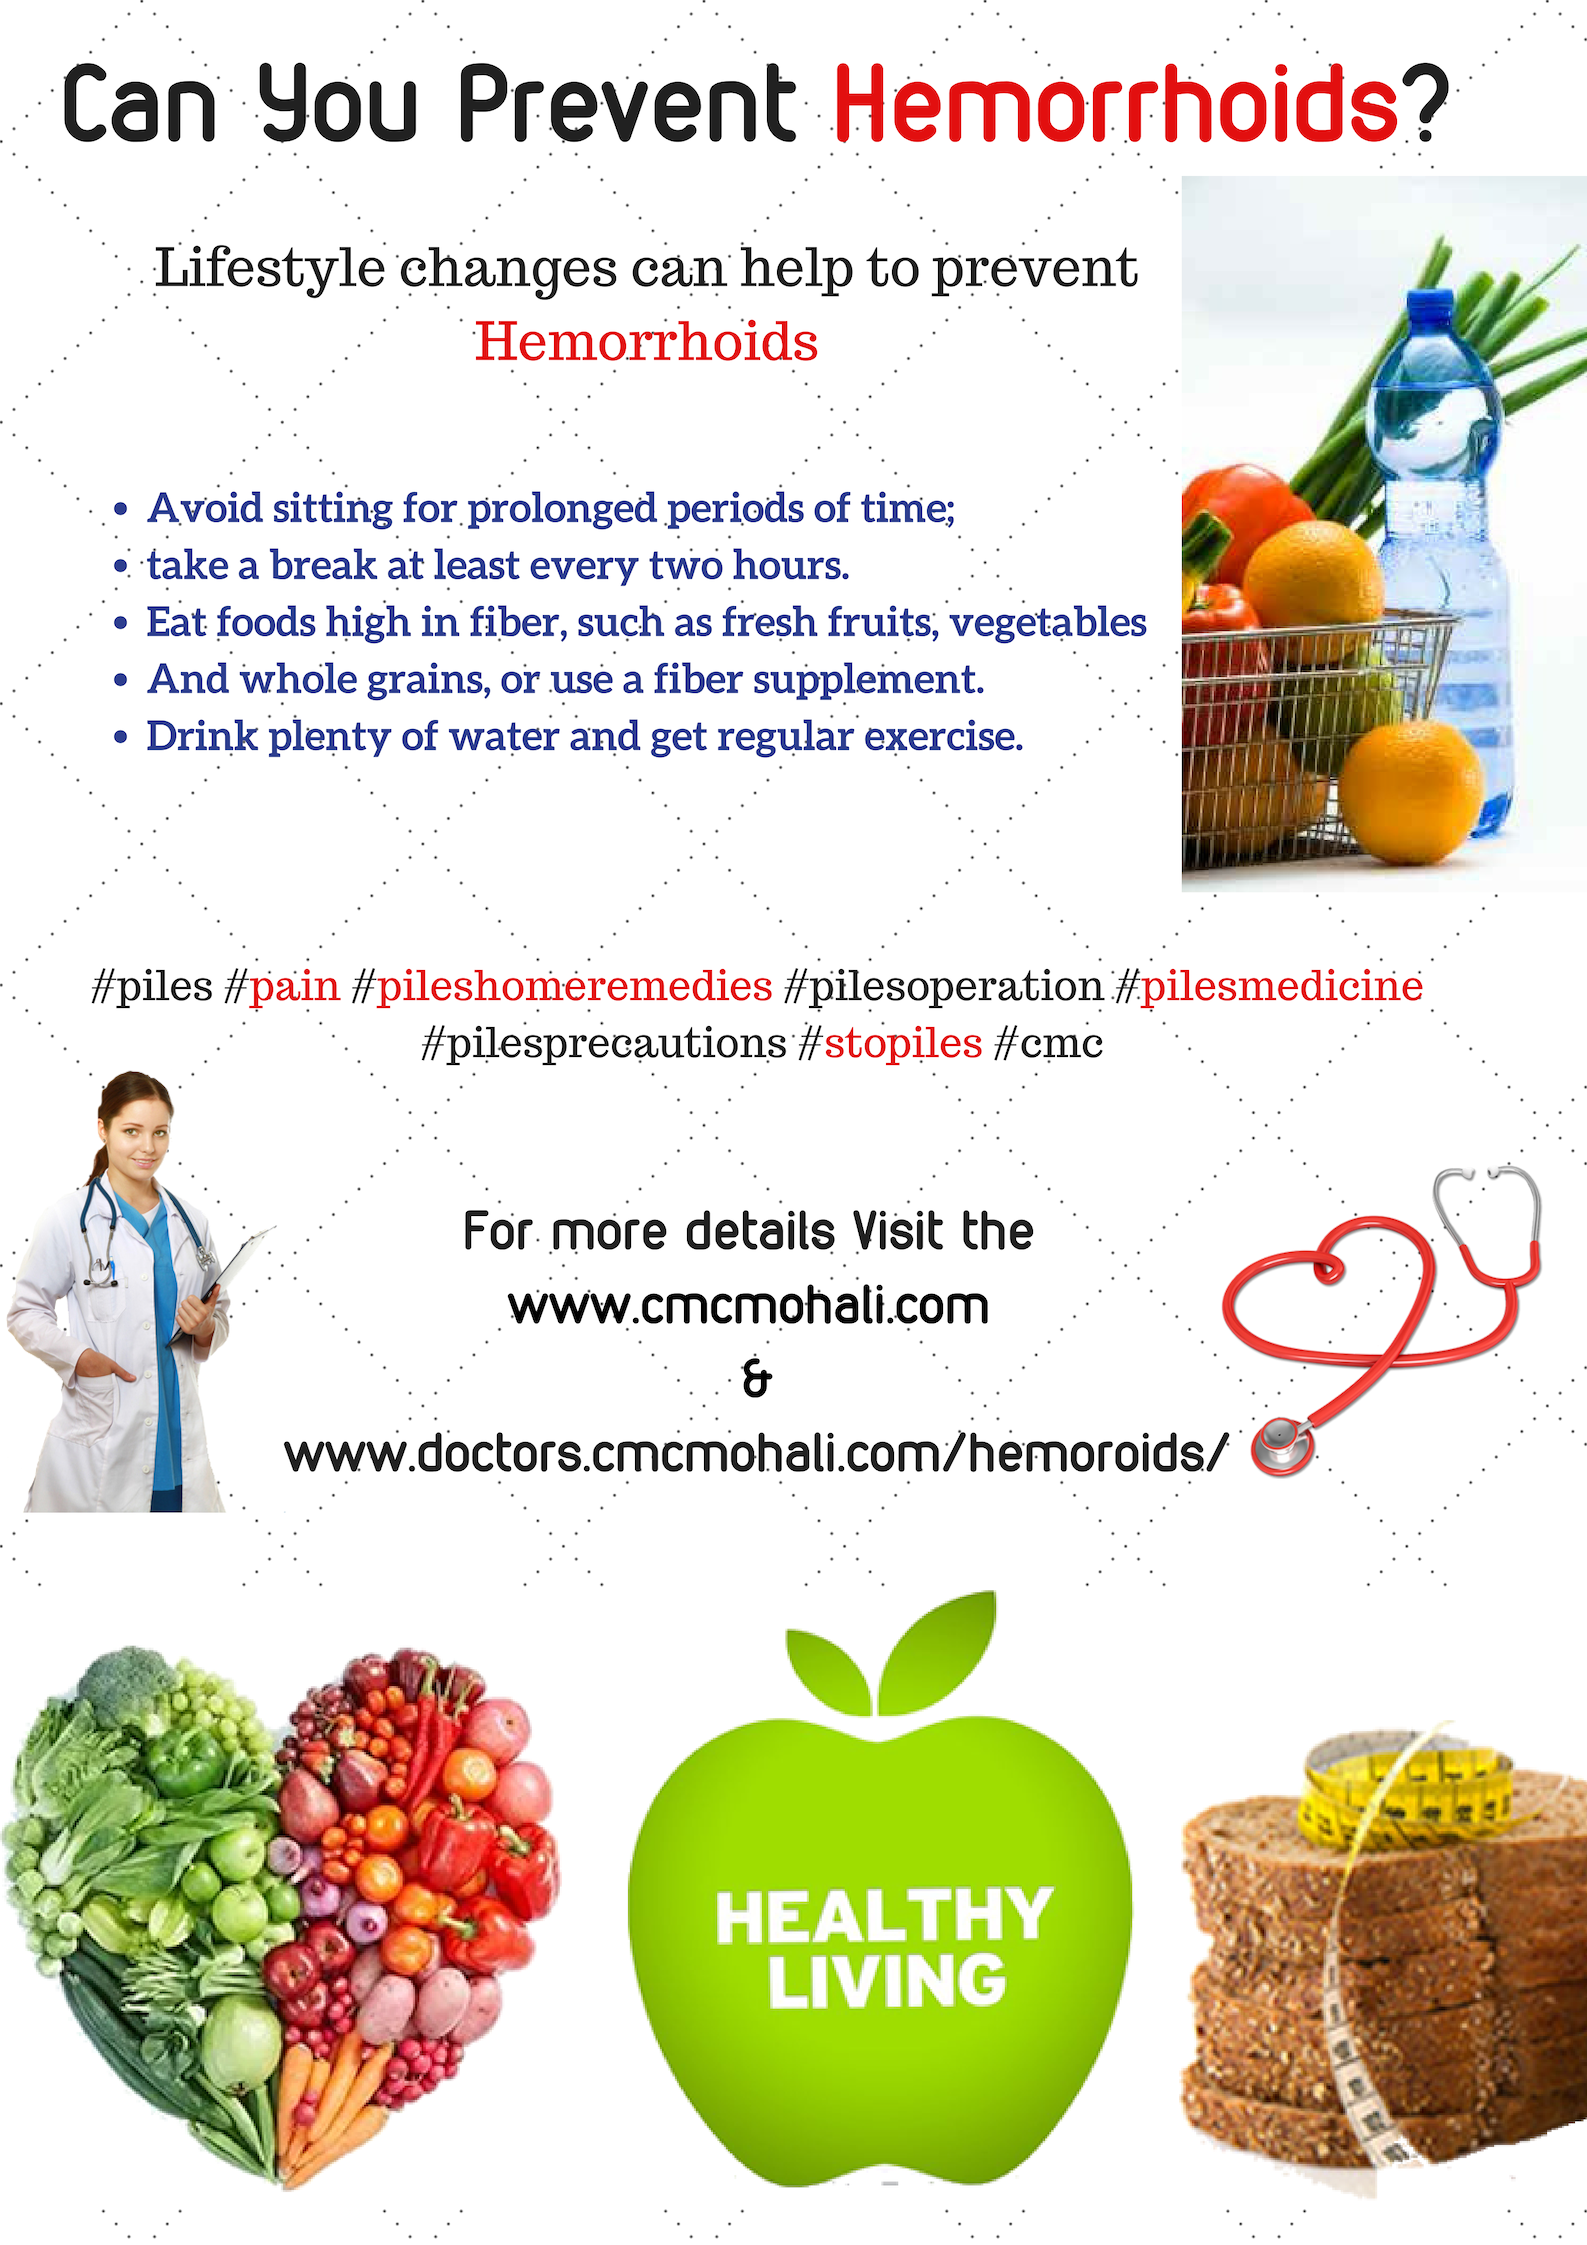 Lifestyle changes can help to prevent hemorrhoids. To